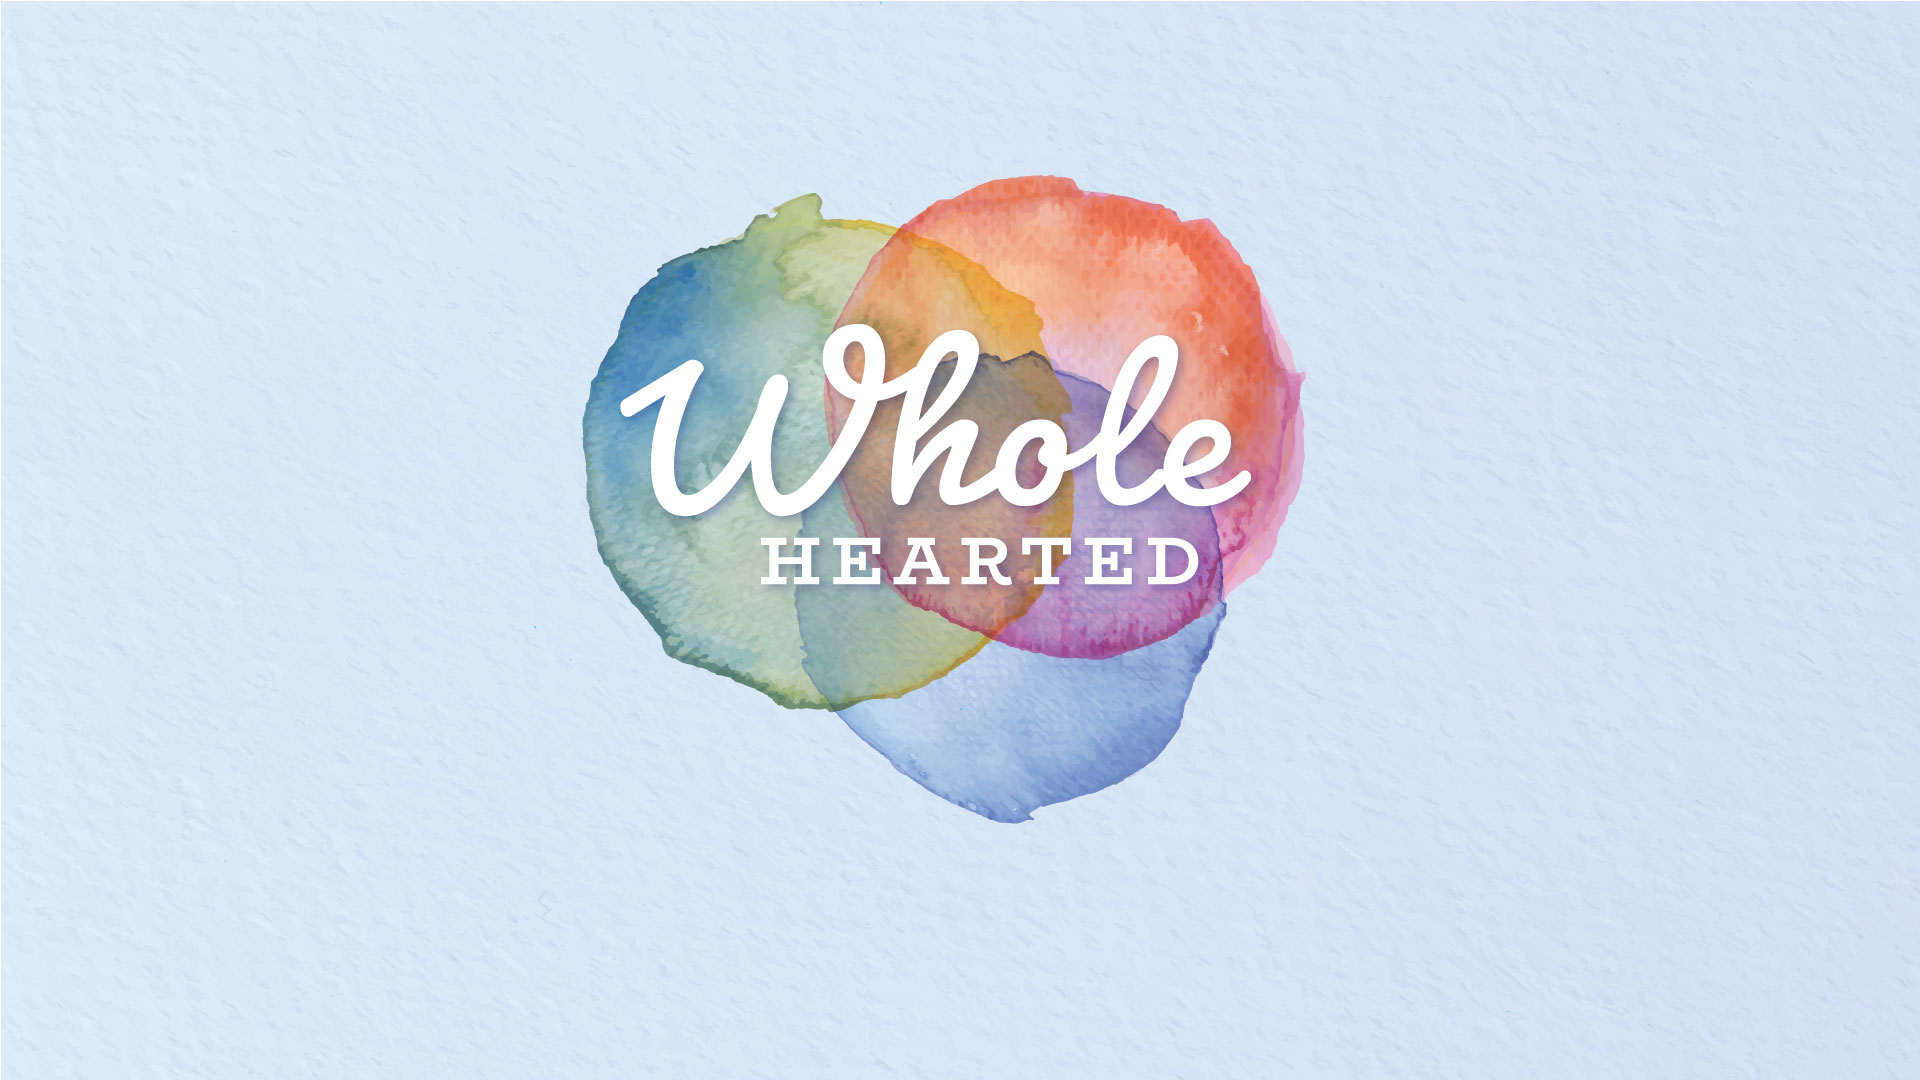 WholeHearted - Part Three